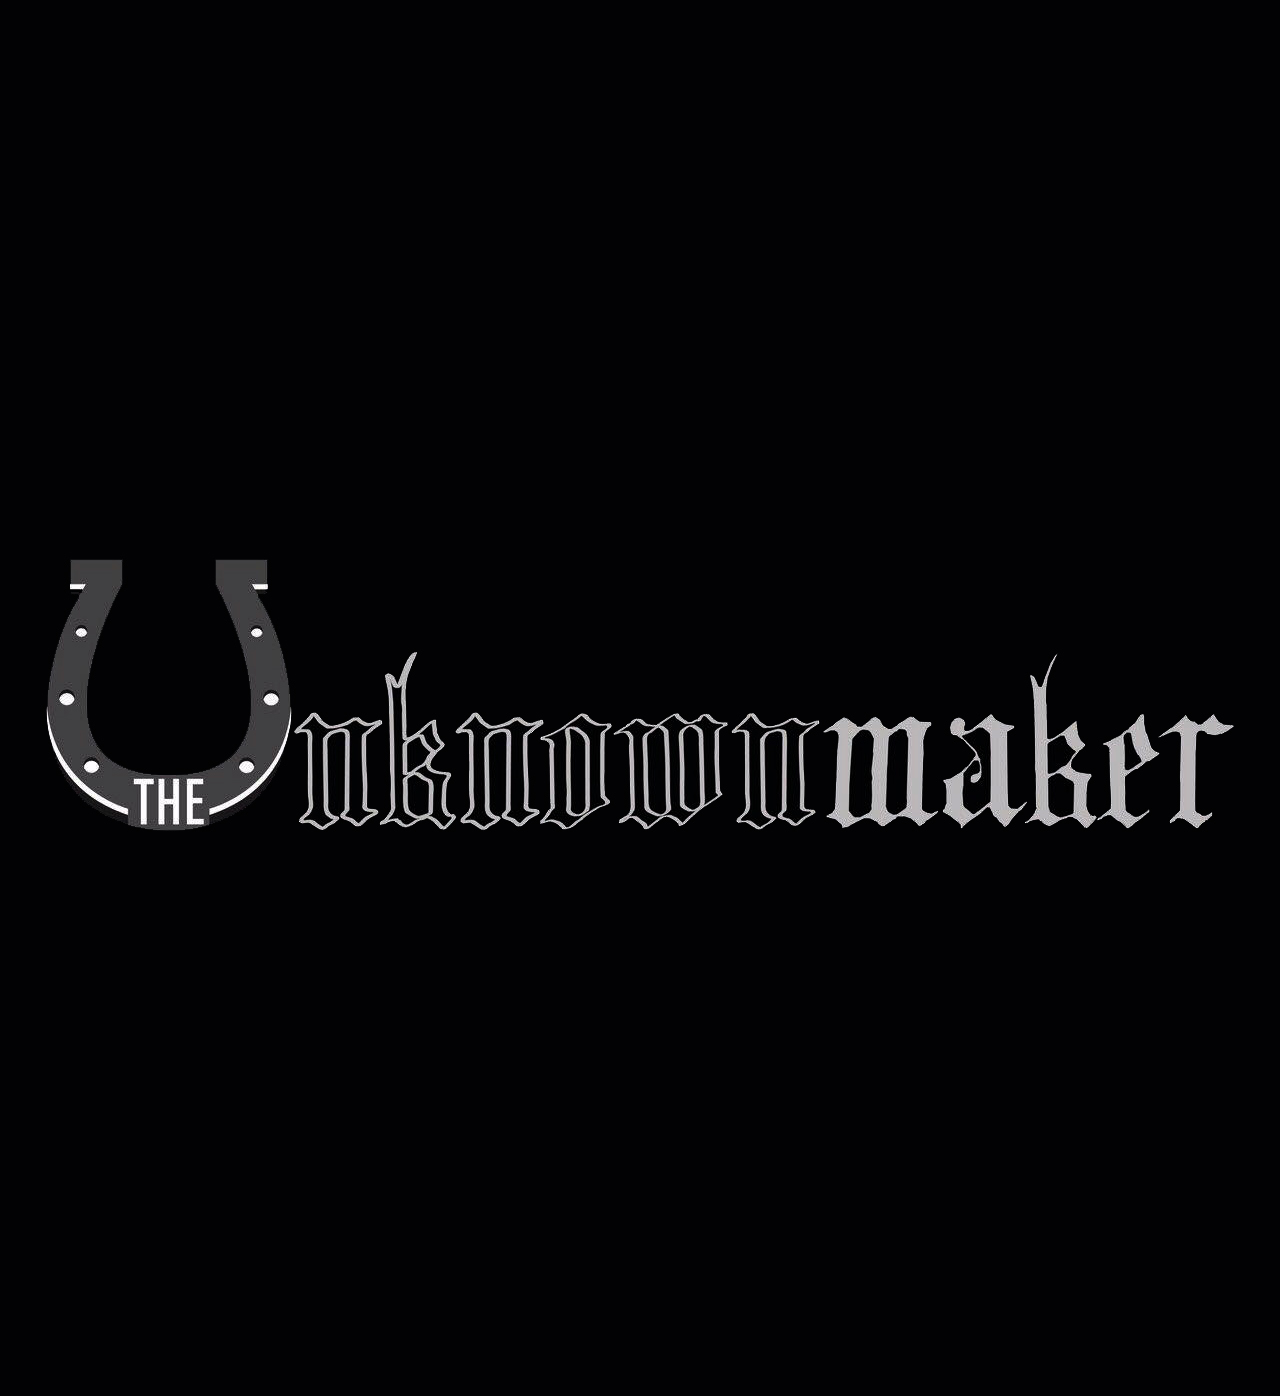 The Unknownmaker